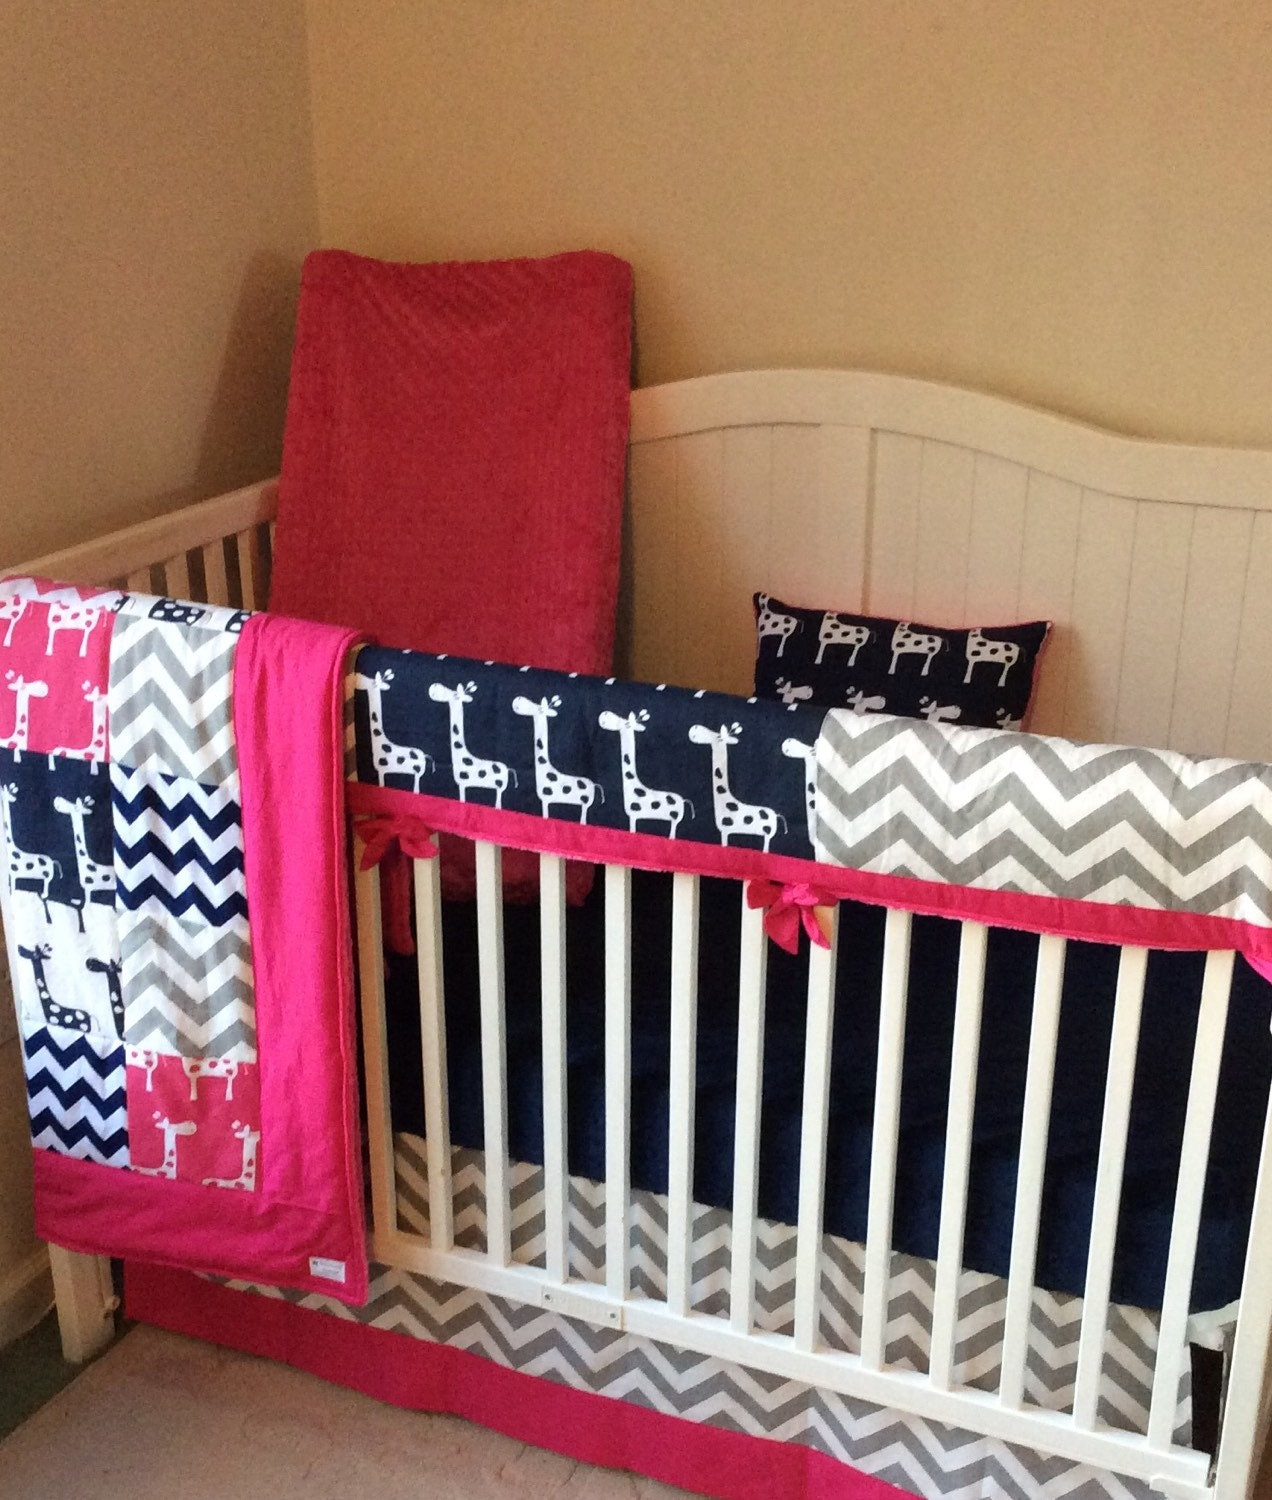 crib bedding set navy pink and gray giraffes bumperless. Black Bedroom Furniture Sets. Home Design Ideas